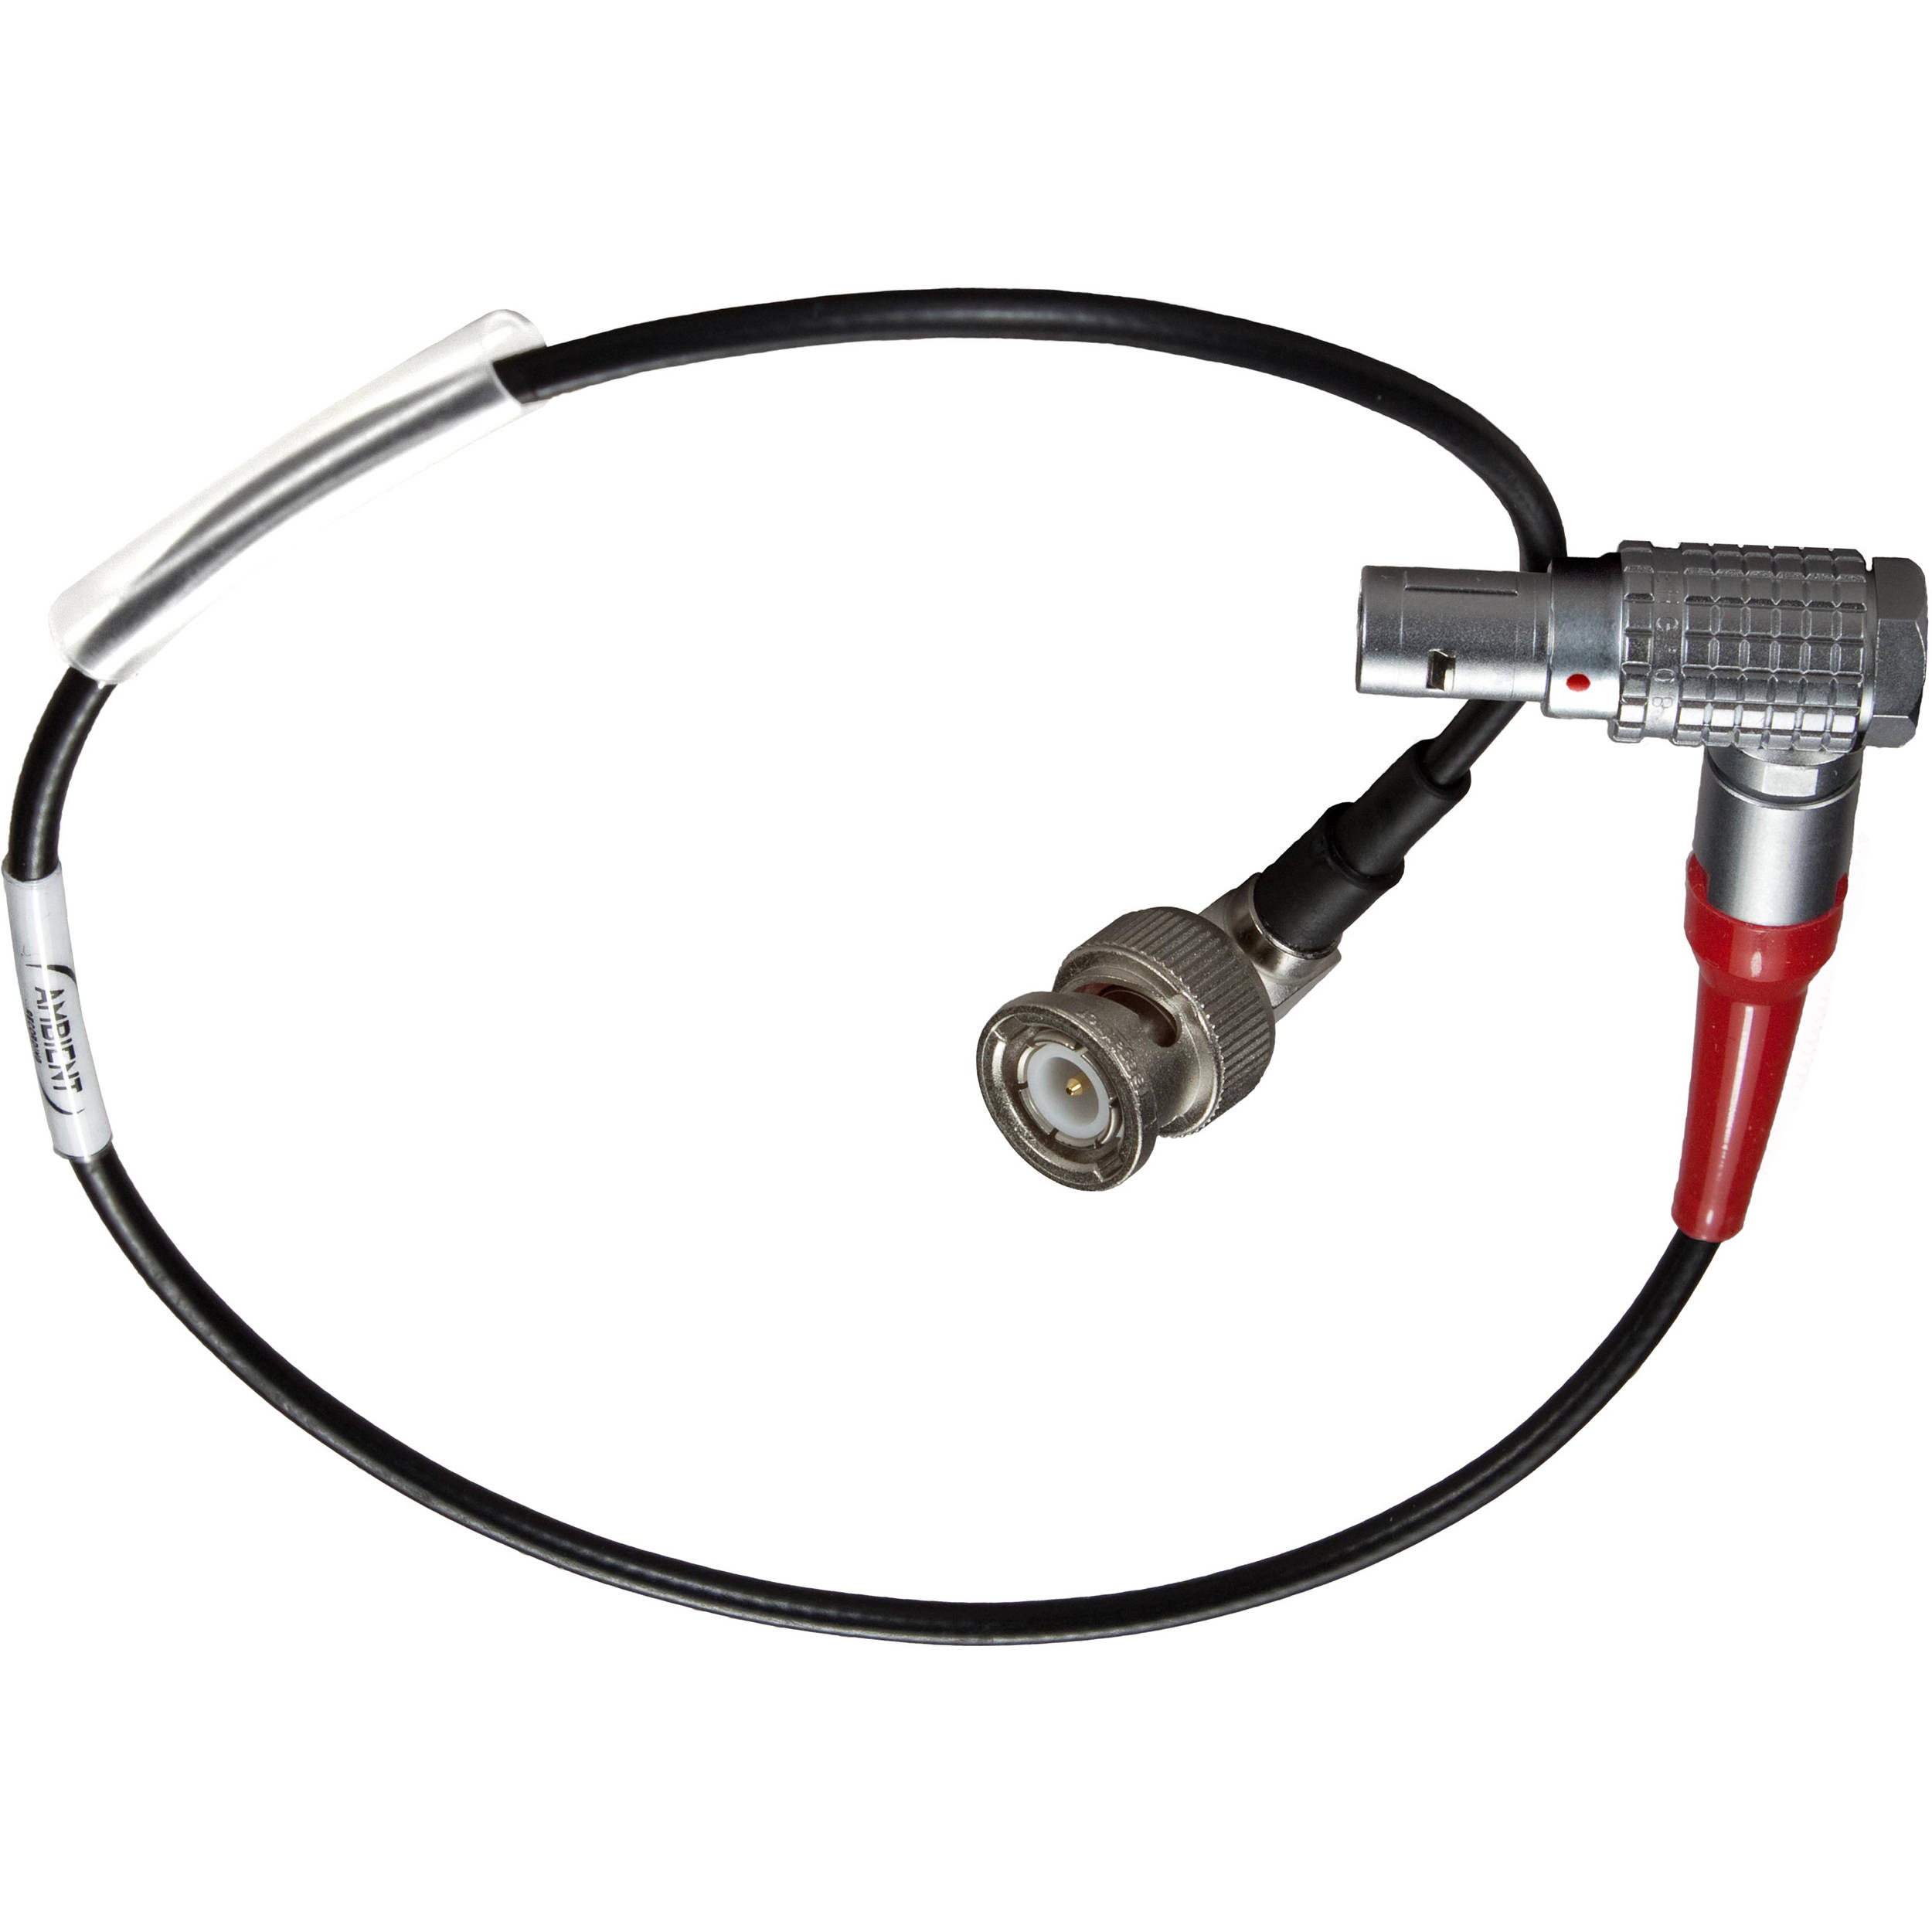 Ambient Recording Lemo 5 Pin To Bnc Output Cable Ltc Out Ra270